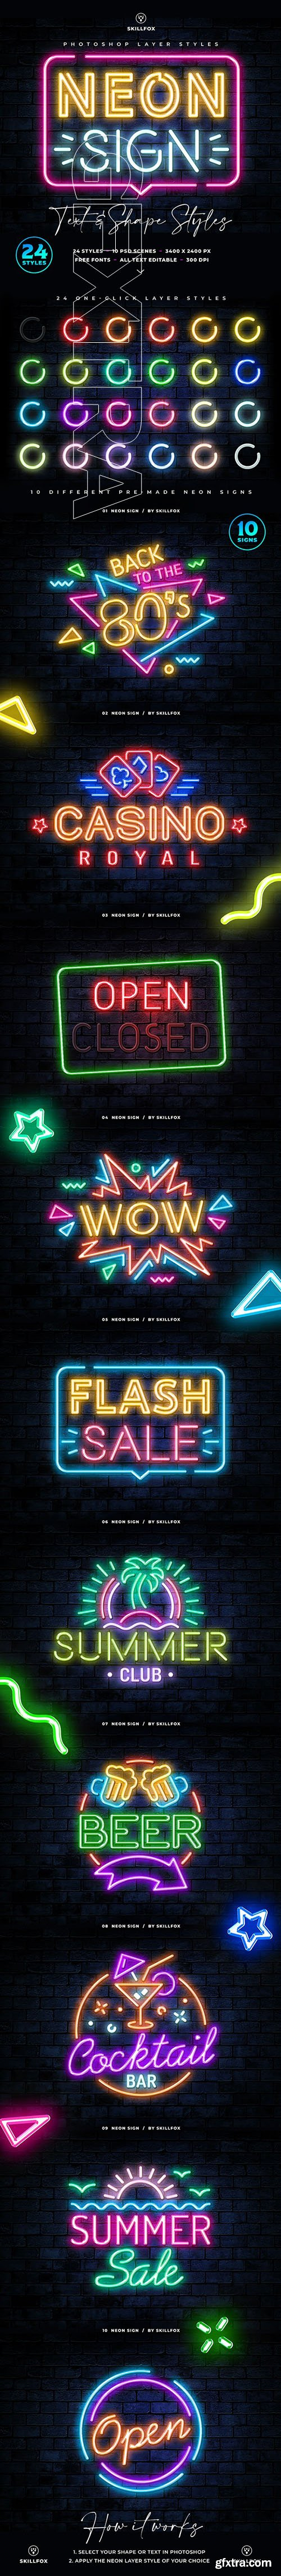 Graphicriver - Neon Sign Photoshop Styles 25832553